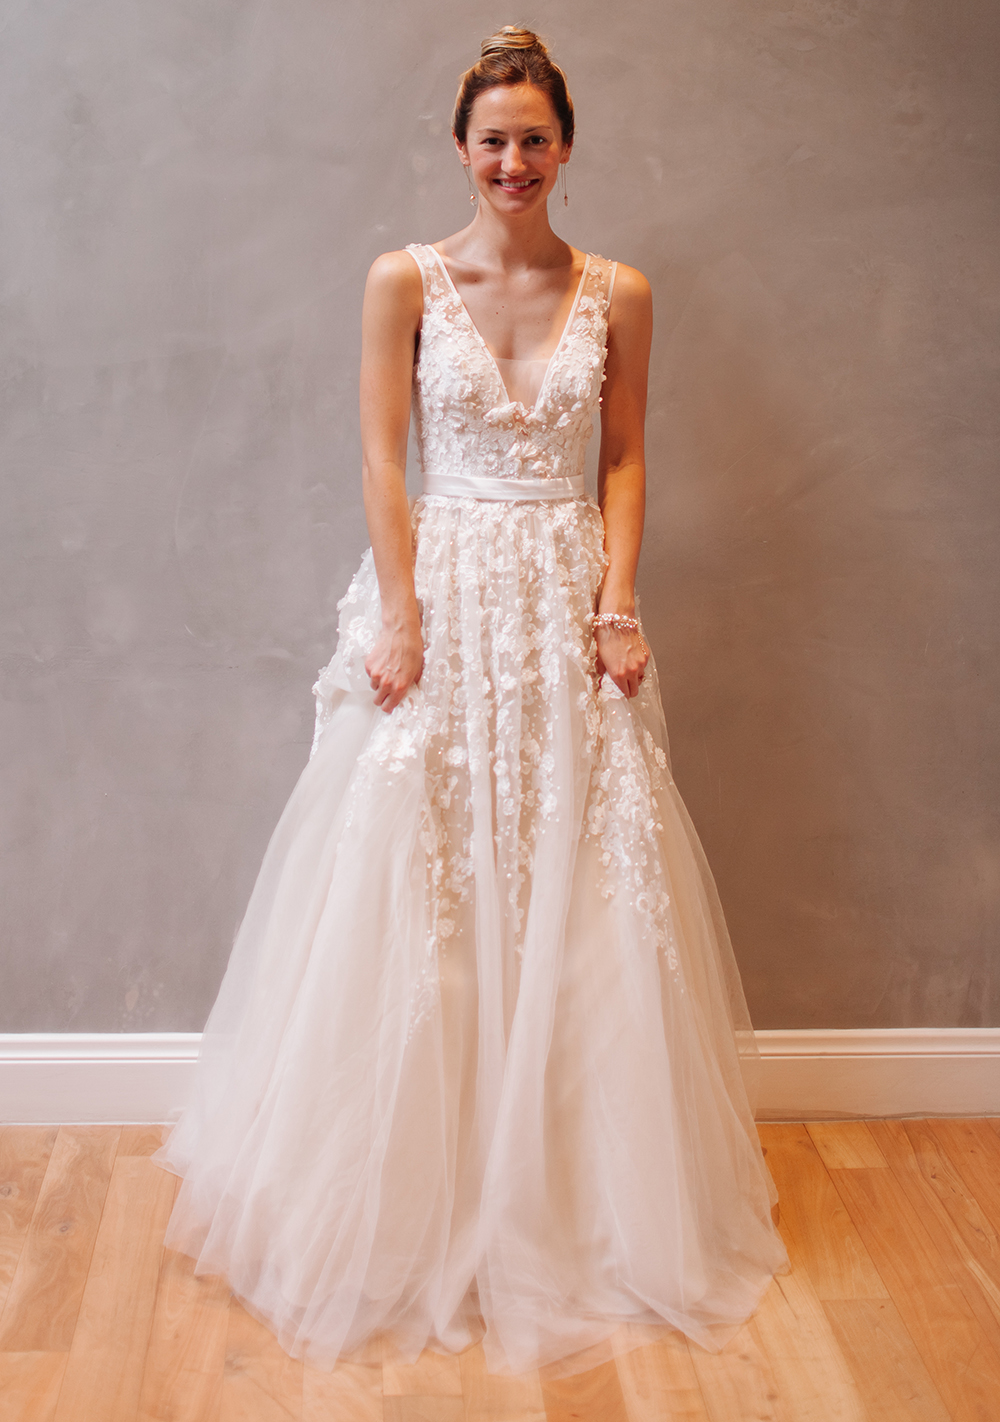 livvyland-blog-bhldn-store-front-houston-texas-bridal-salon-wedding-dress-shopping-austin-texas-fashion-blogger-olivia-watson-kayla-snell-photography-embellished-gown